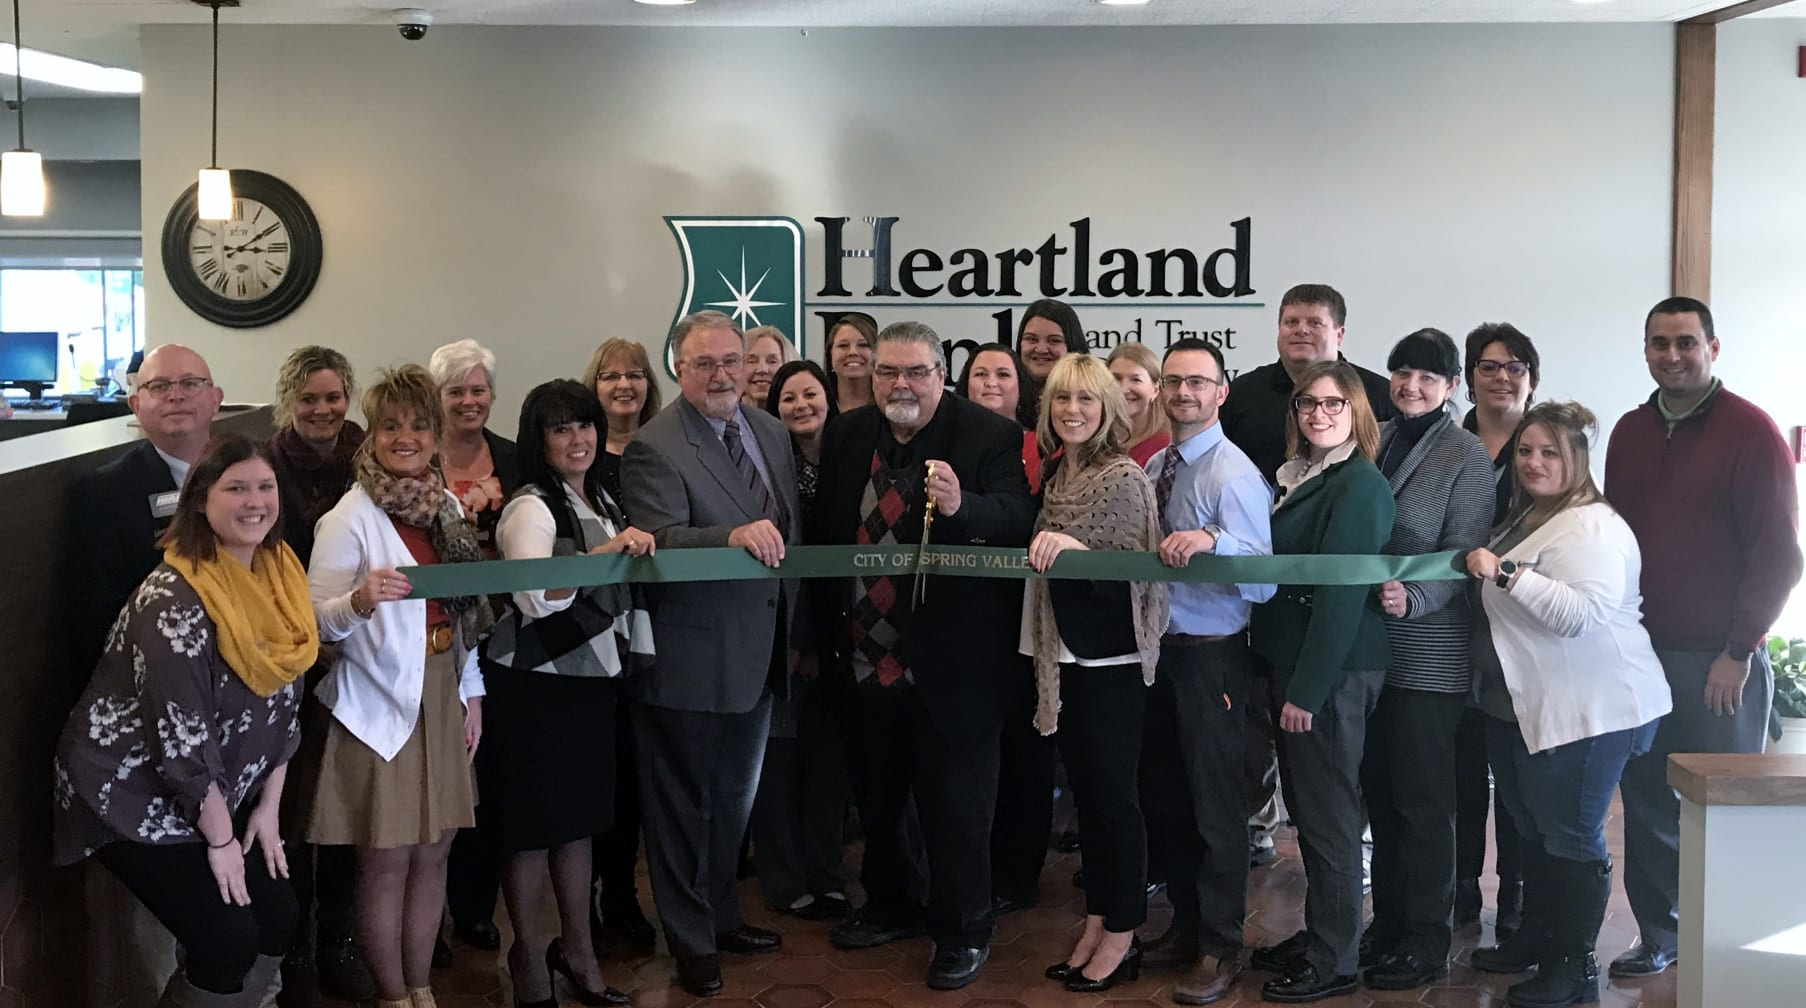 Heartland-Bank_comp-w1806.jpg